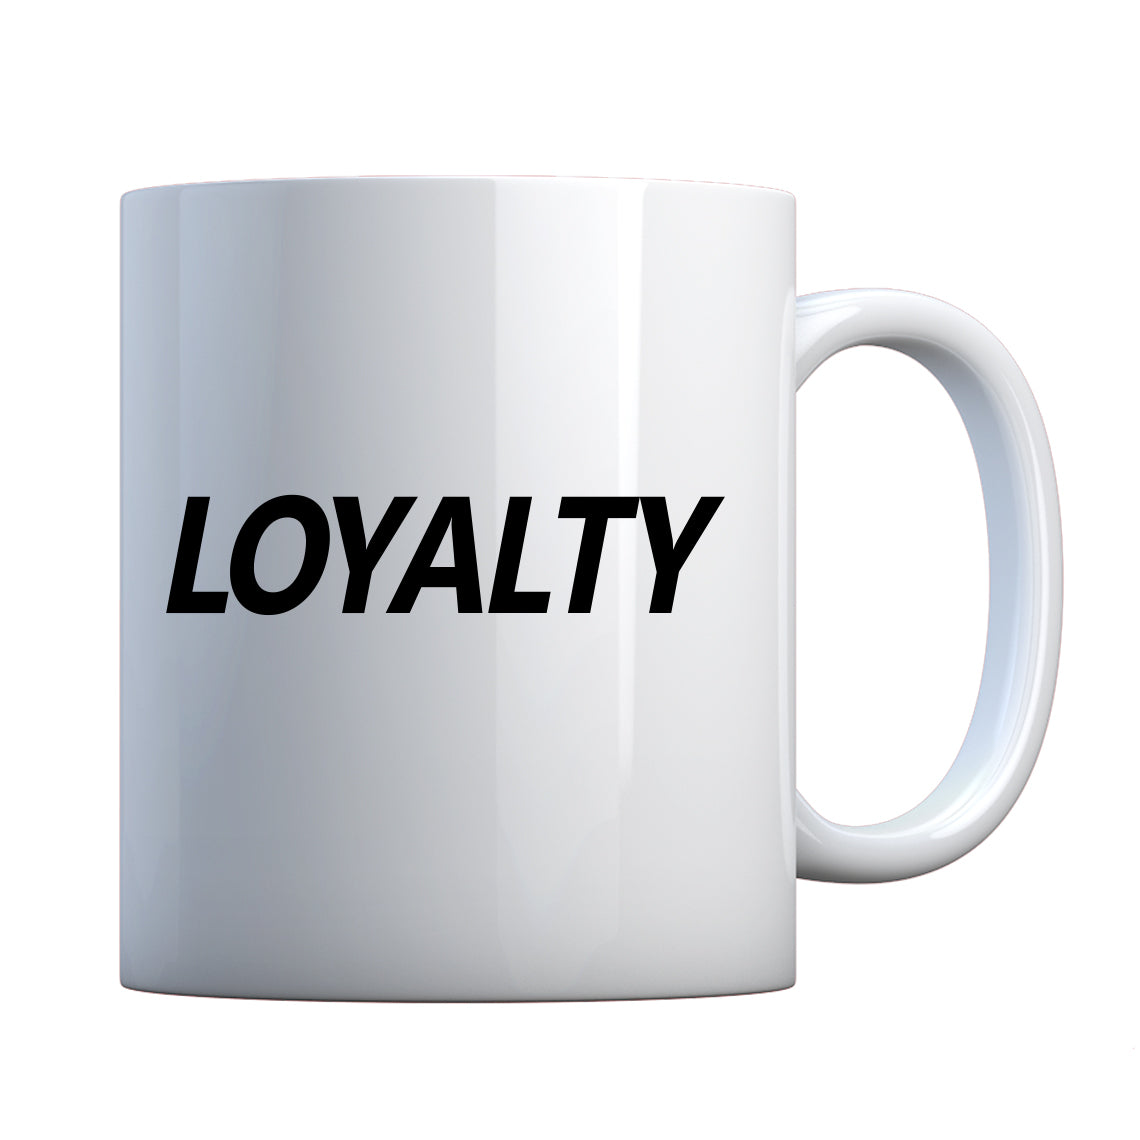 Loyalty Ceramic Gift Mug